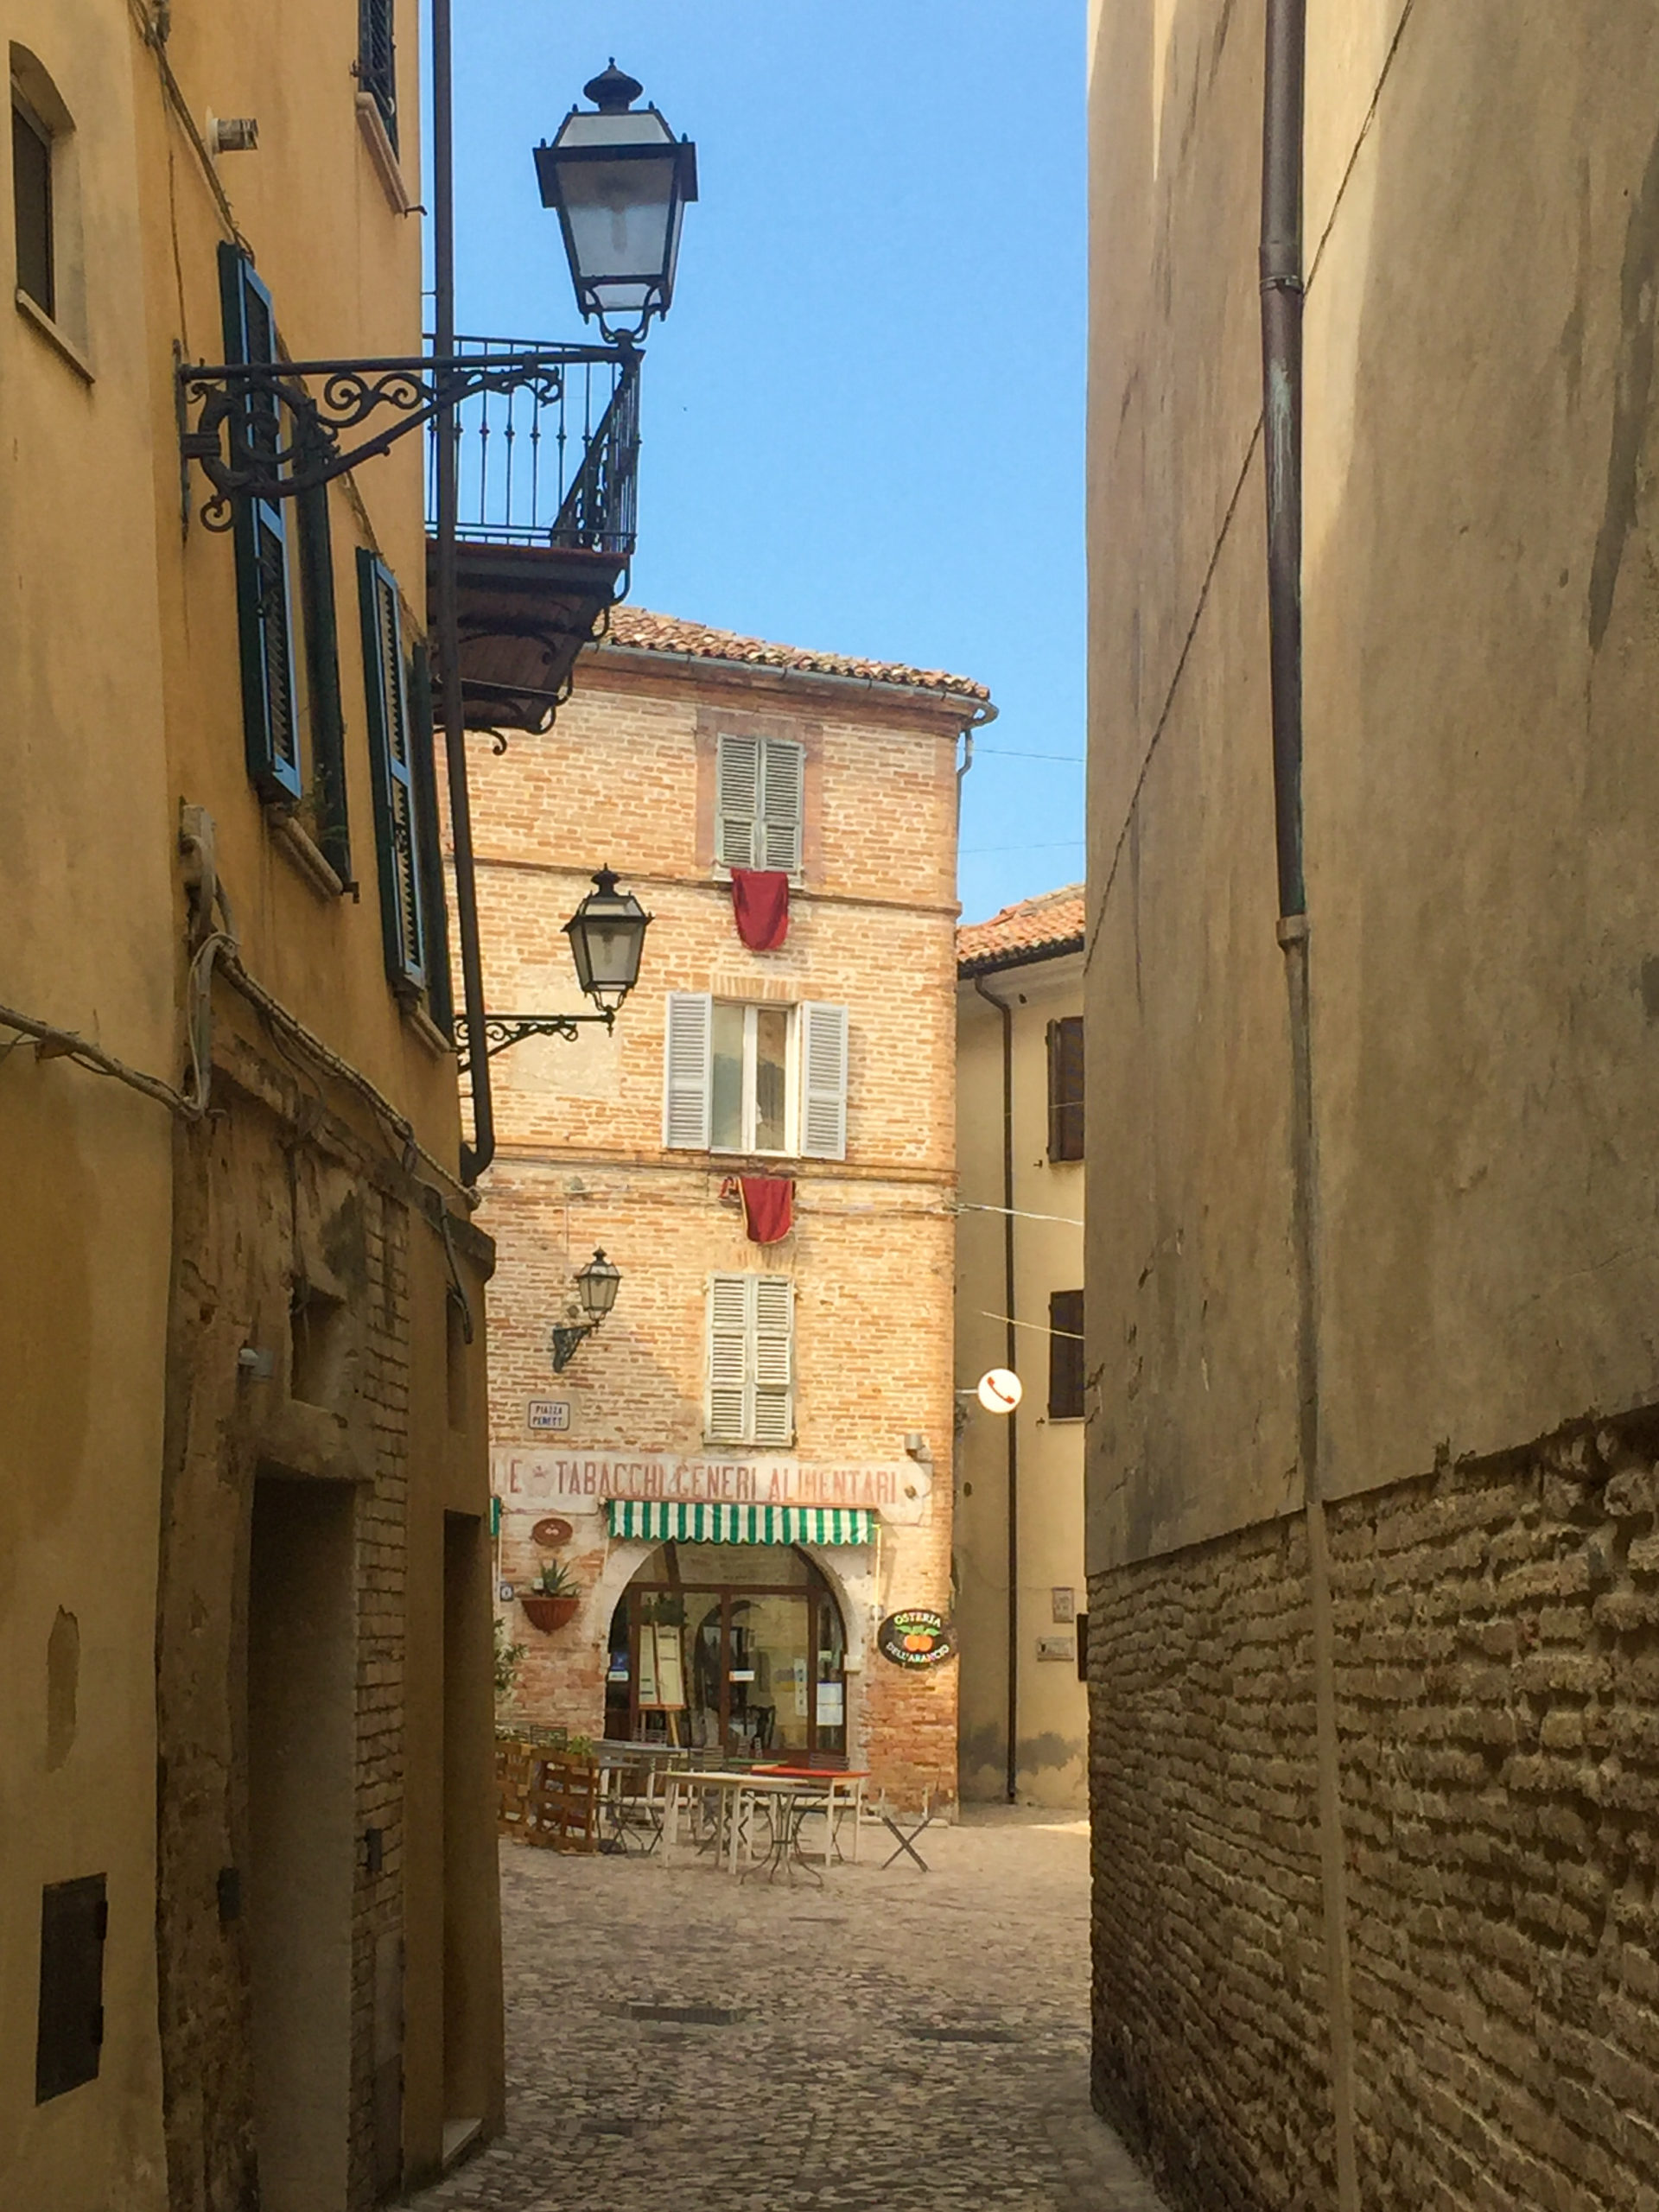 The old town of Grottammare, a lovely seaside town in the region of Le Marche